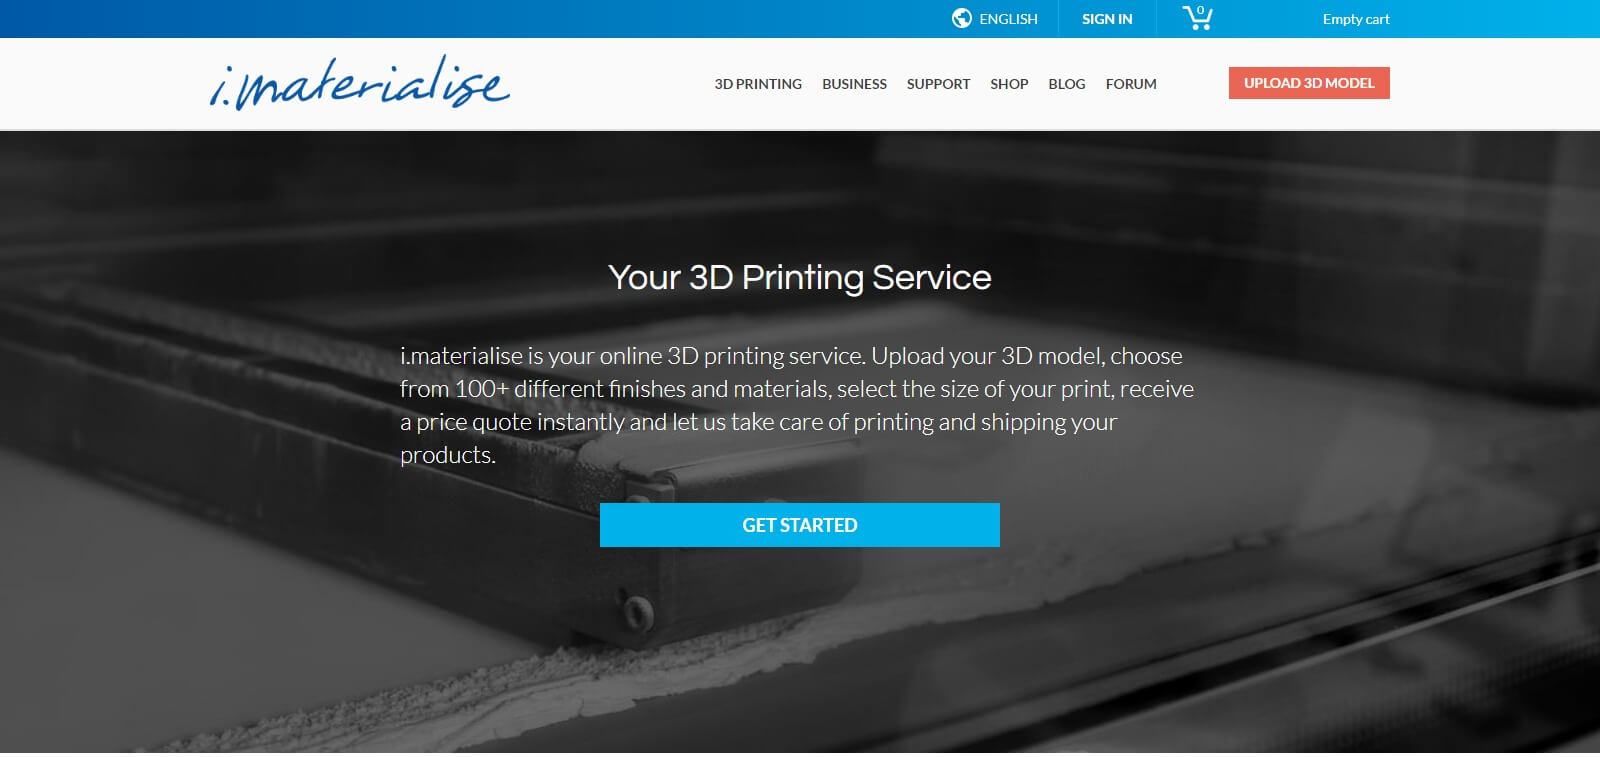 Online 3D Printing Service - i.materialise - i.materialise.com